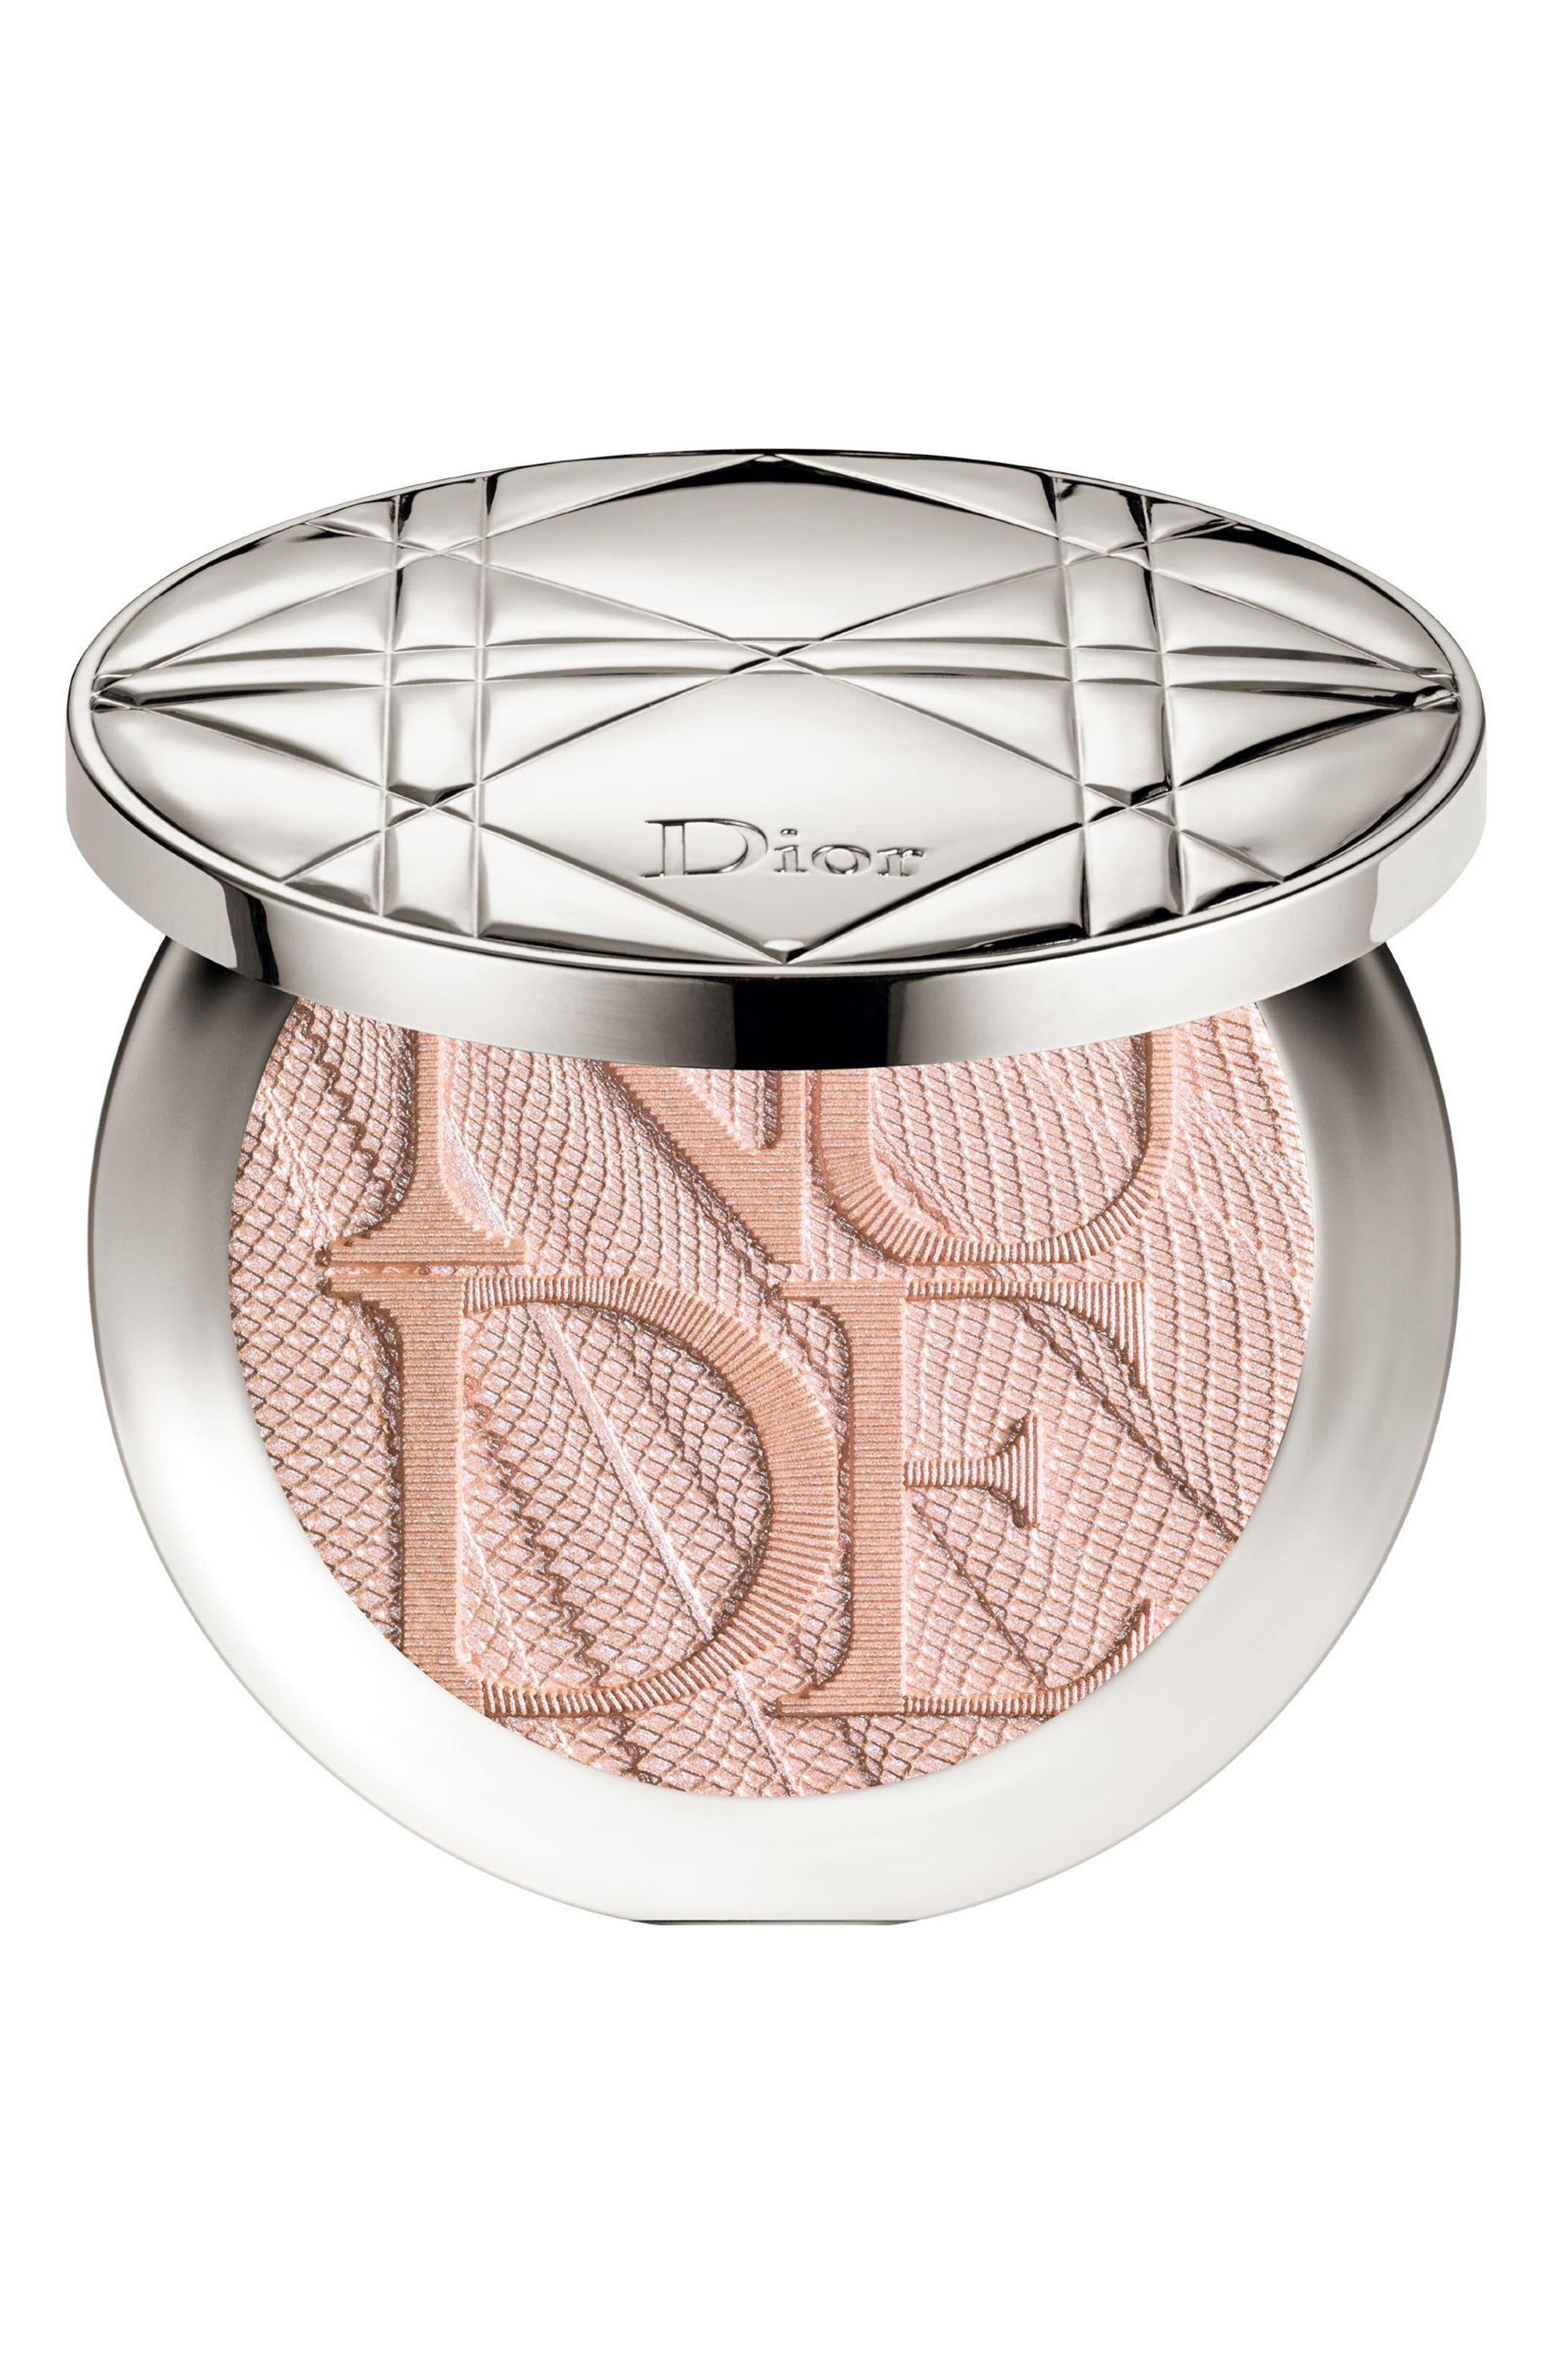 Diorskin Nude Air Luminizer Glow Addict Holographic Sculpting Powder,                         Main,                         color, 001 HOLO PINK